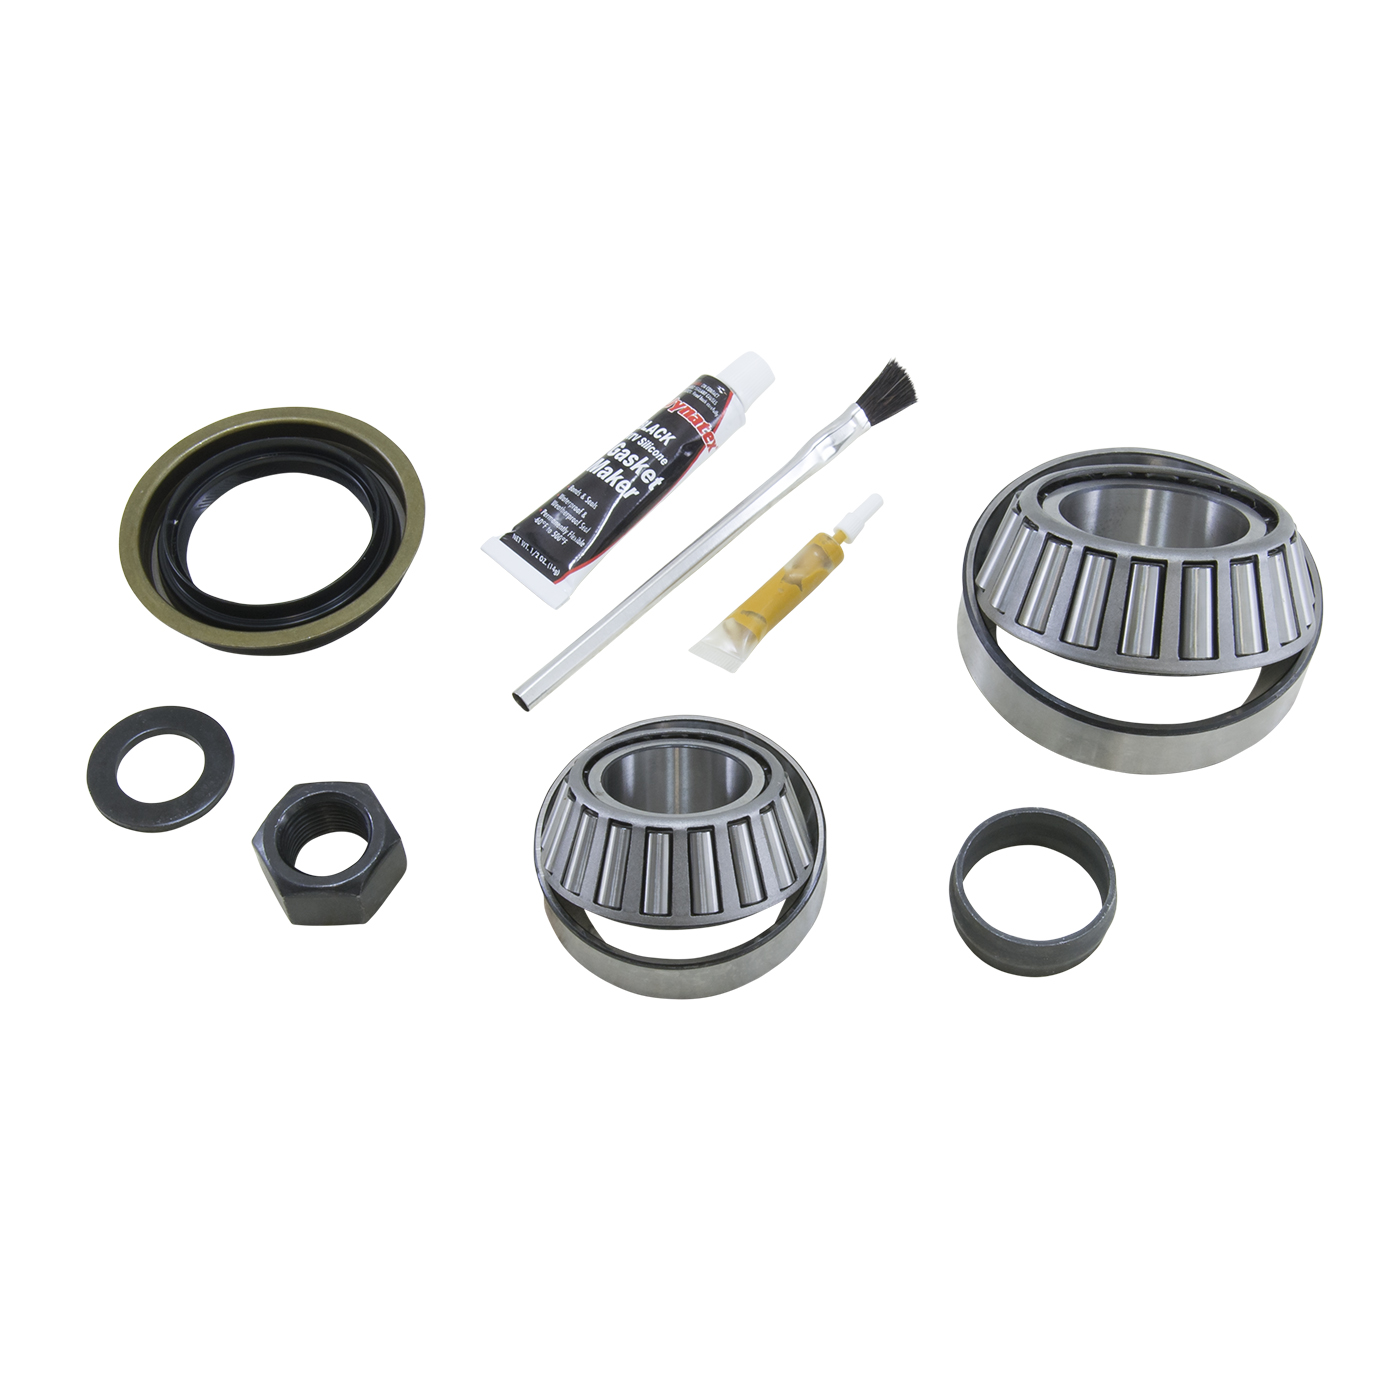 ZBKC9.25-F - USA Standard Bearing kit for Chrysler 9.25